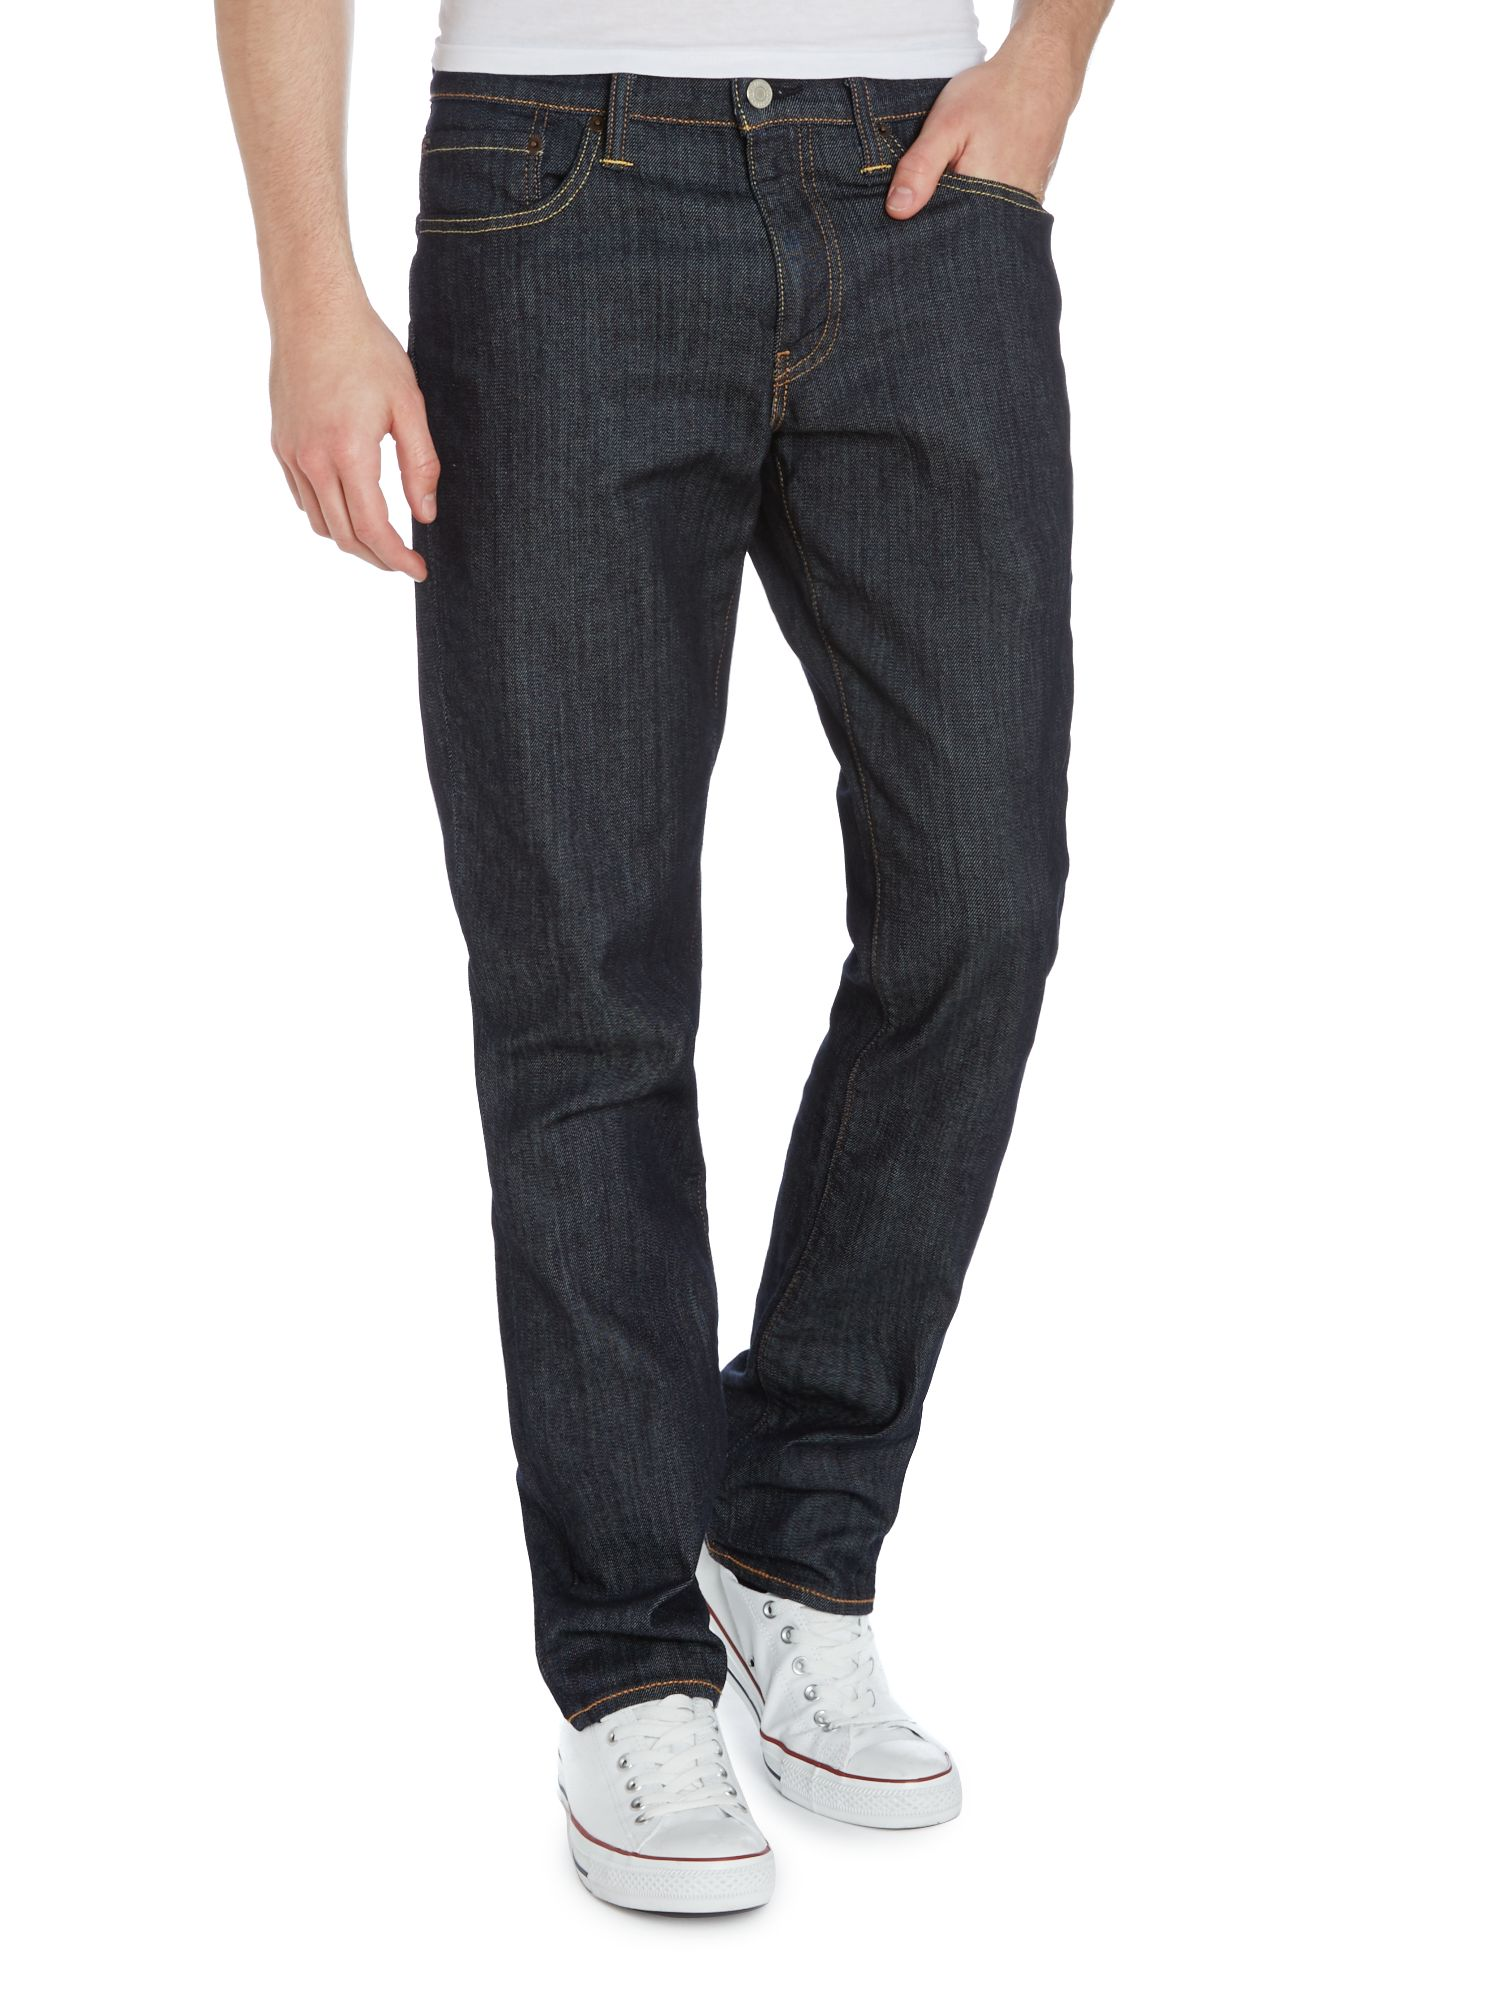 511 slim fit dark wash jeans